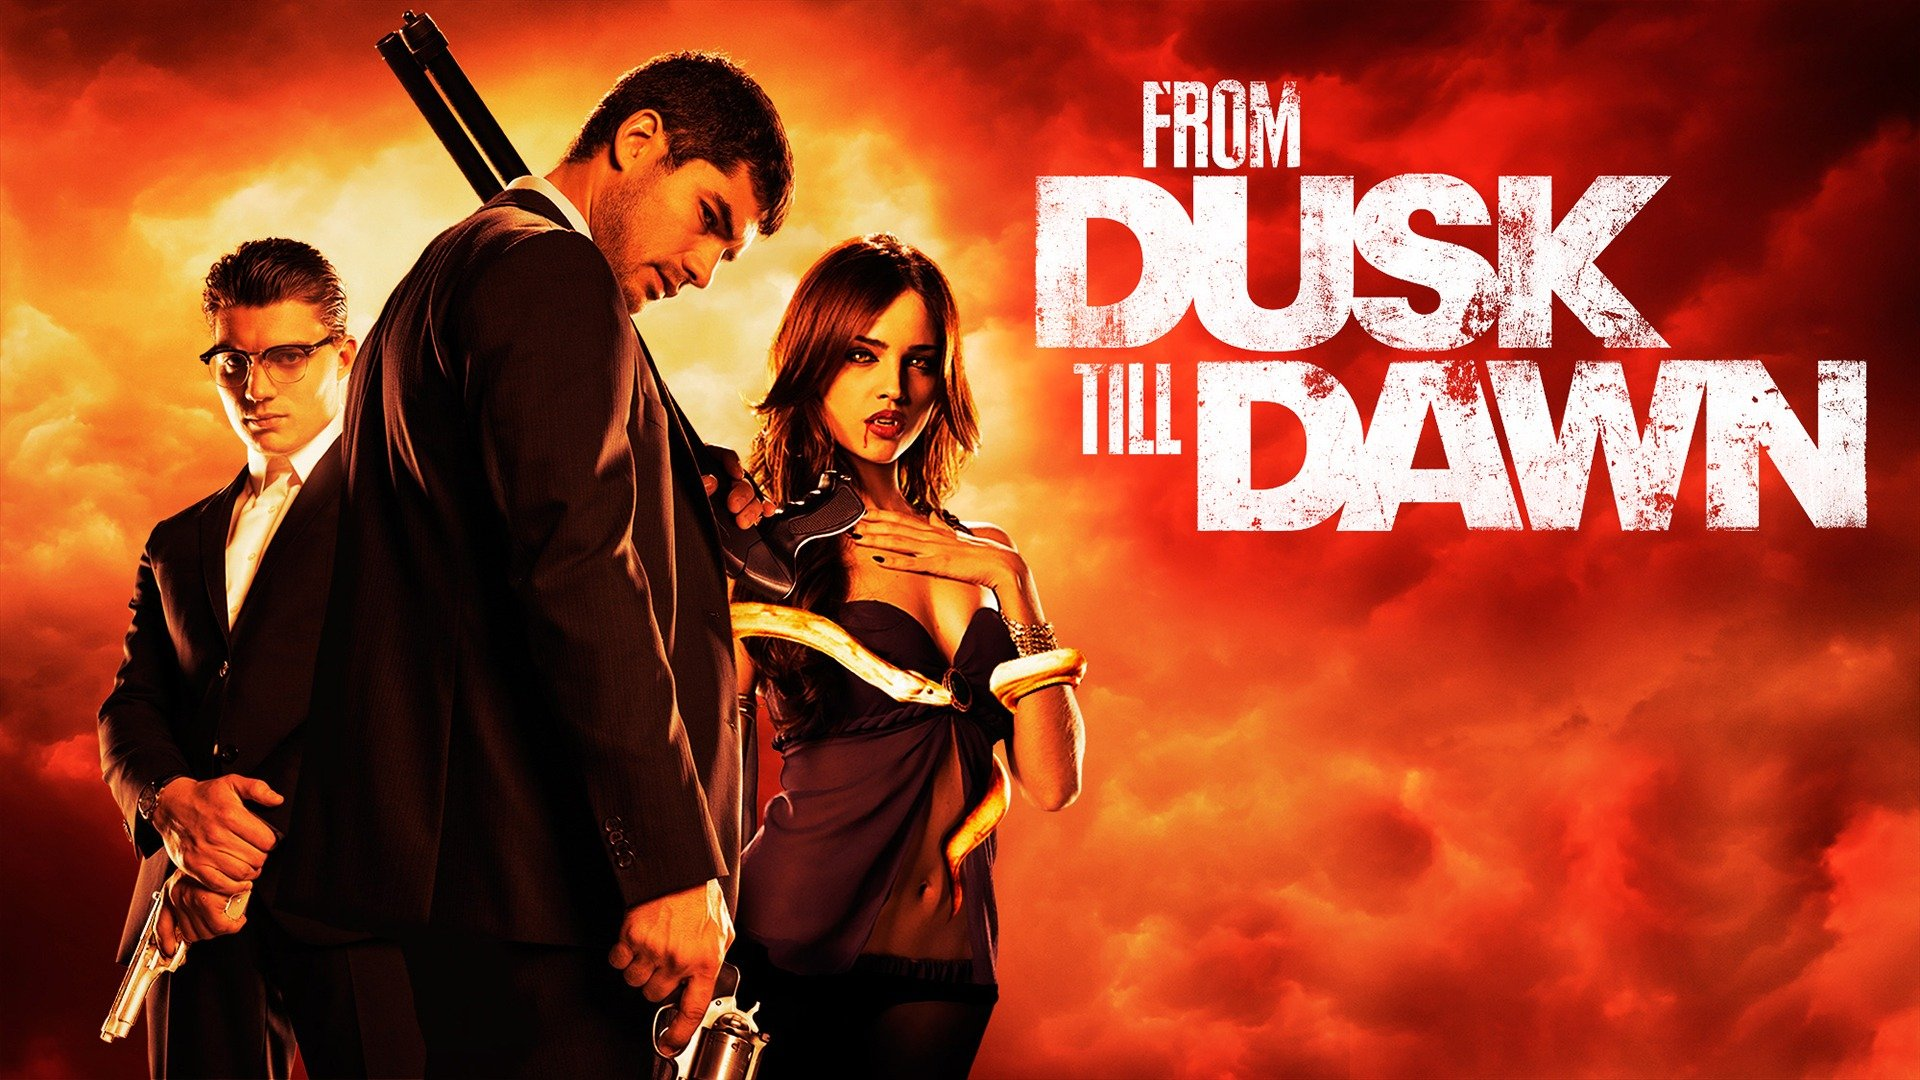 Stiahni si Seriál     Od soumraku do usvitu / From Dusk Till Dawn: The Series - 3. serie (CZ)[TvRip] = CSFD 65%